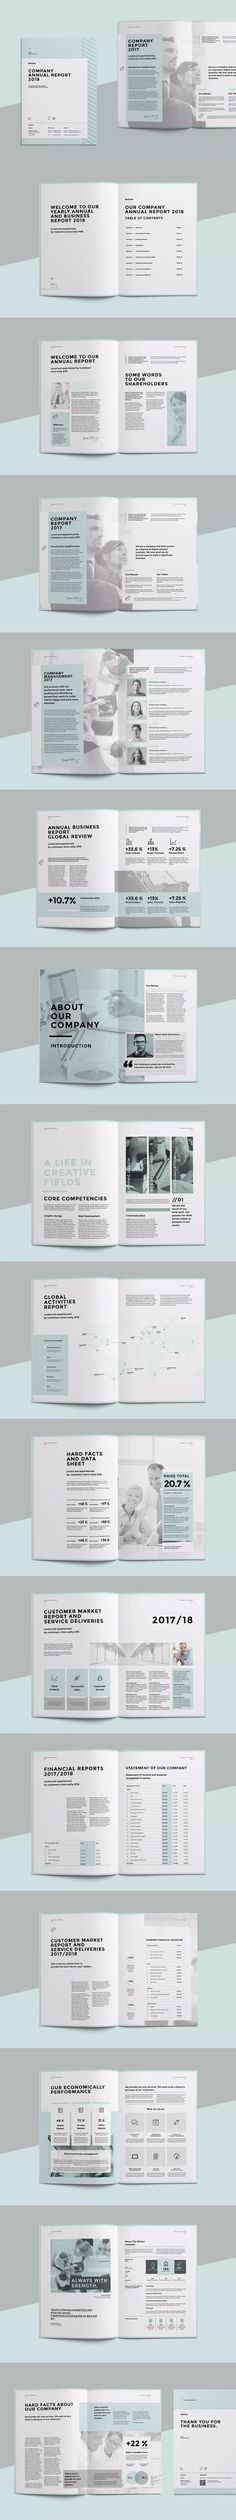 69 best annual report templates images on pinterest in 2018 annual